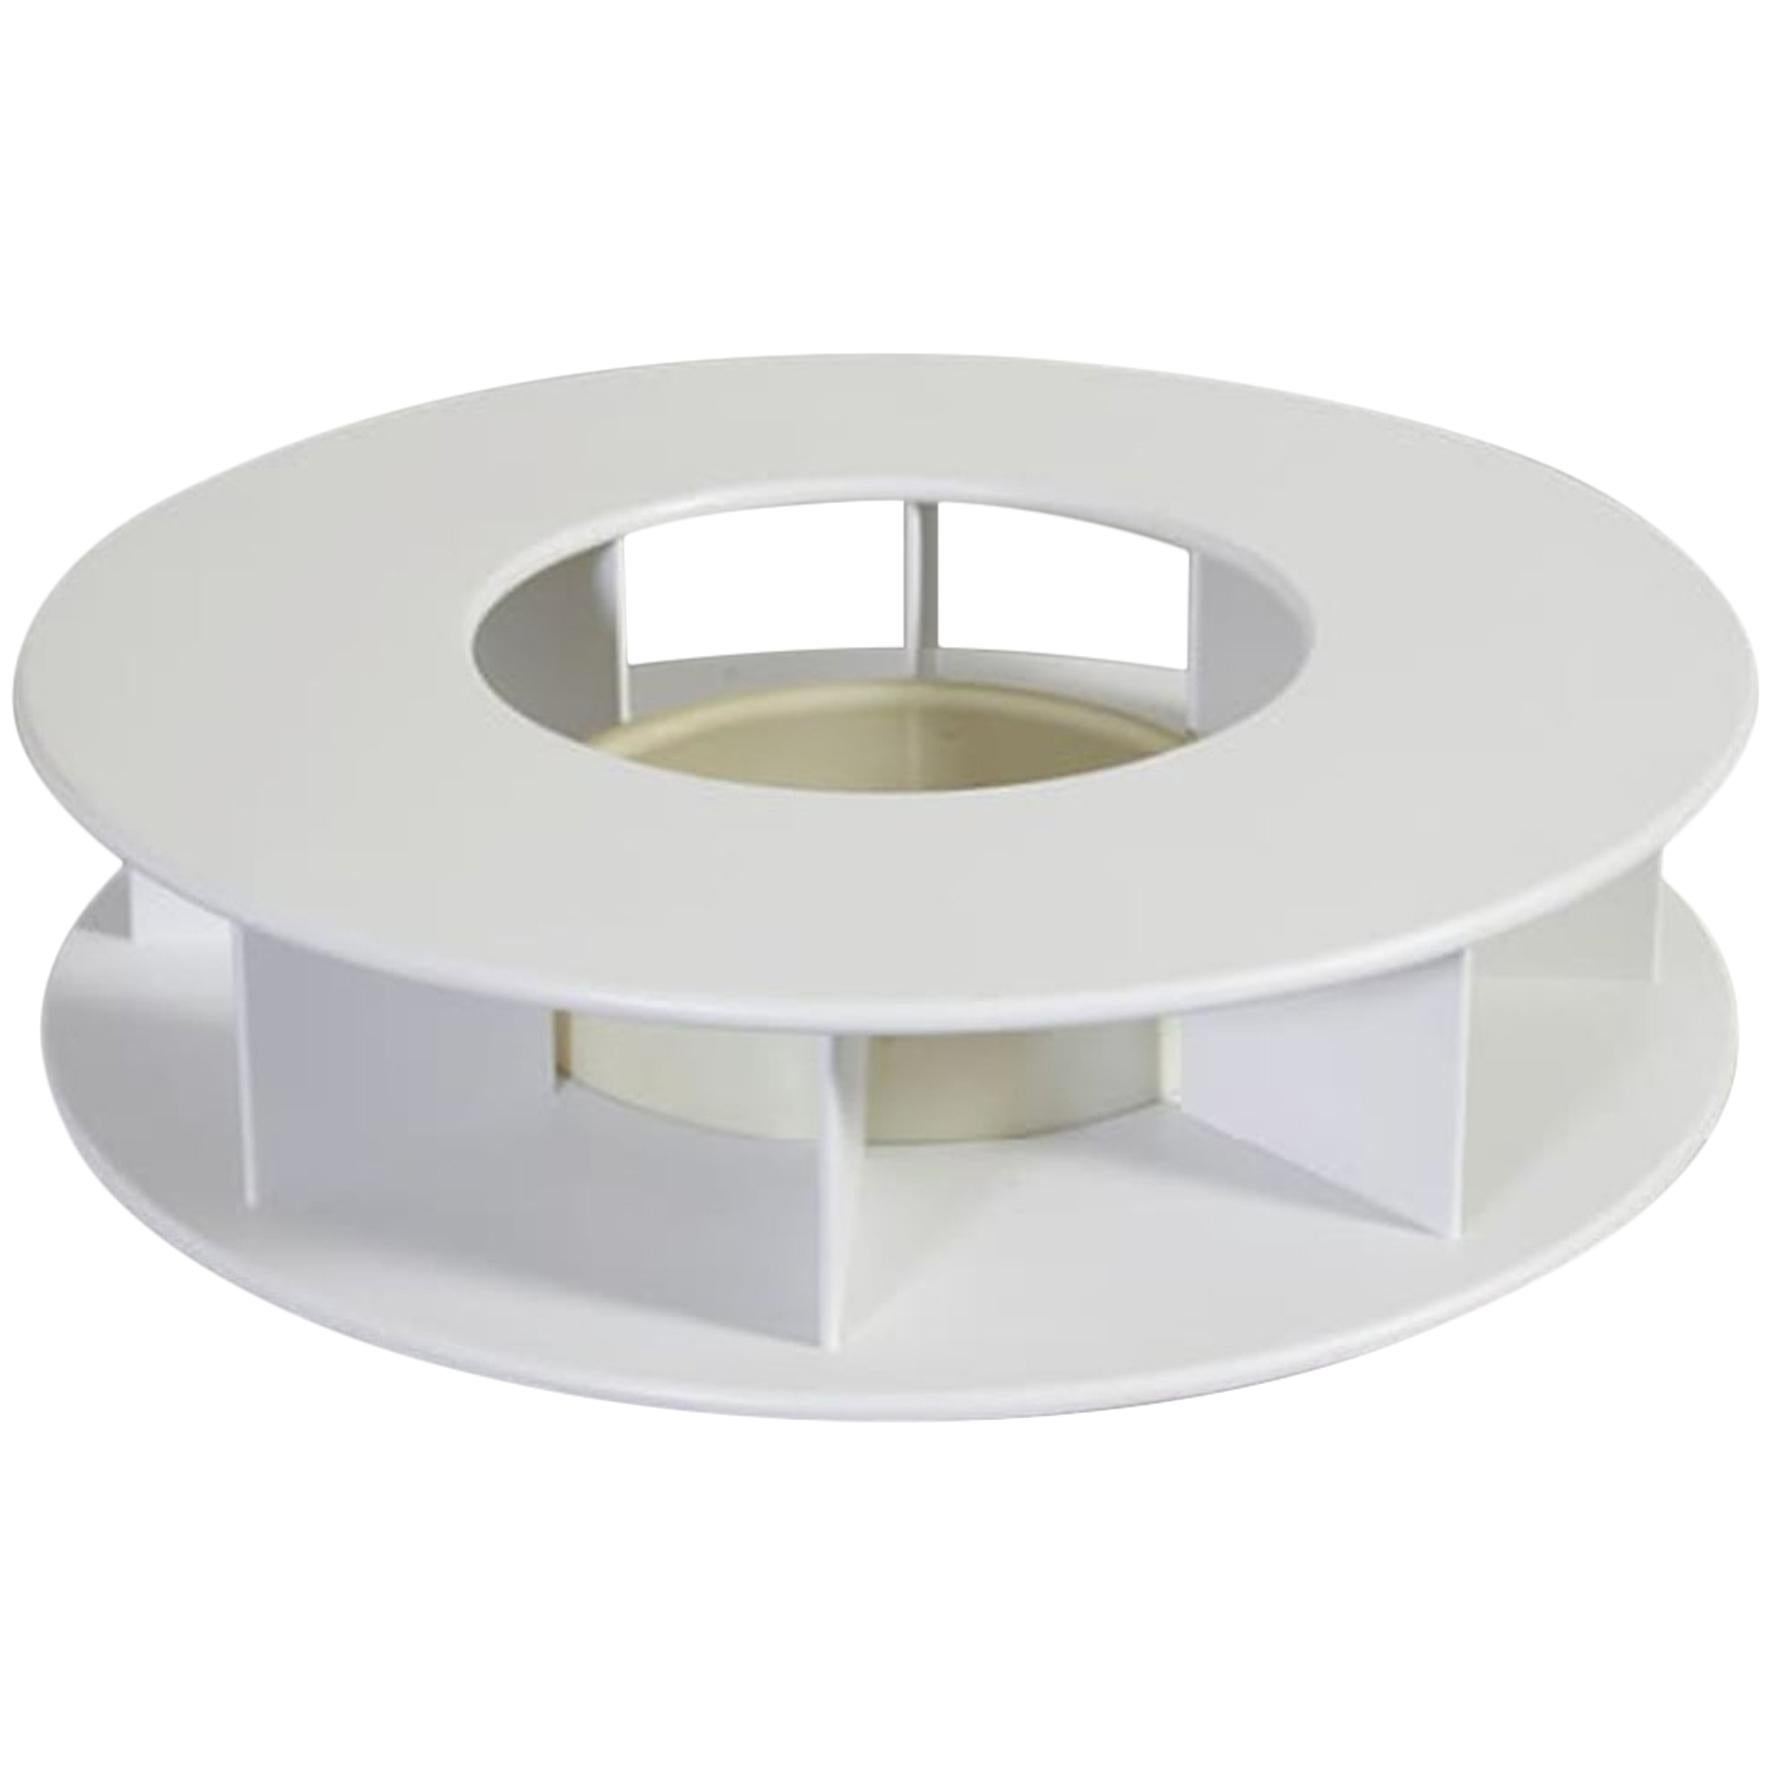 Superstudio Baazar Round White Table with Light for Giovannetti, Italy, 1968